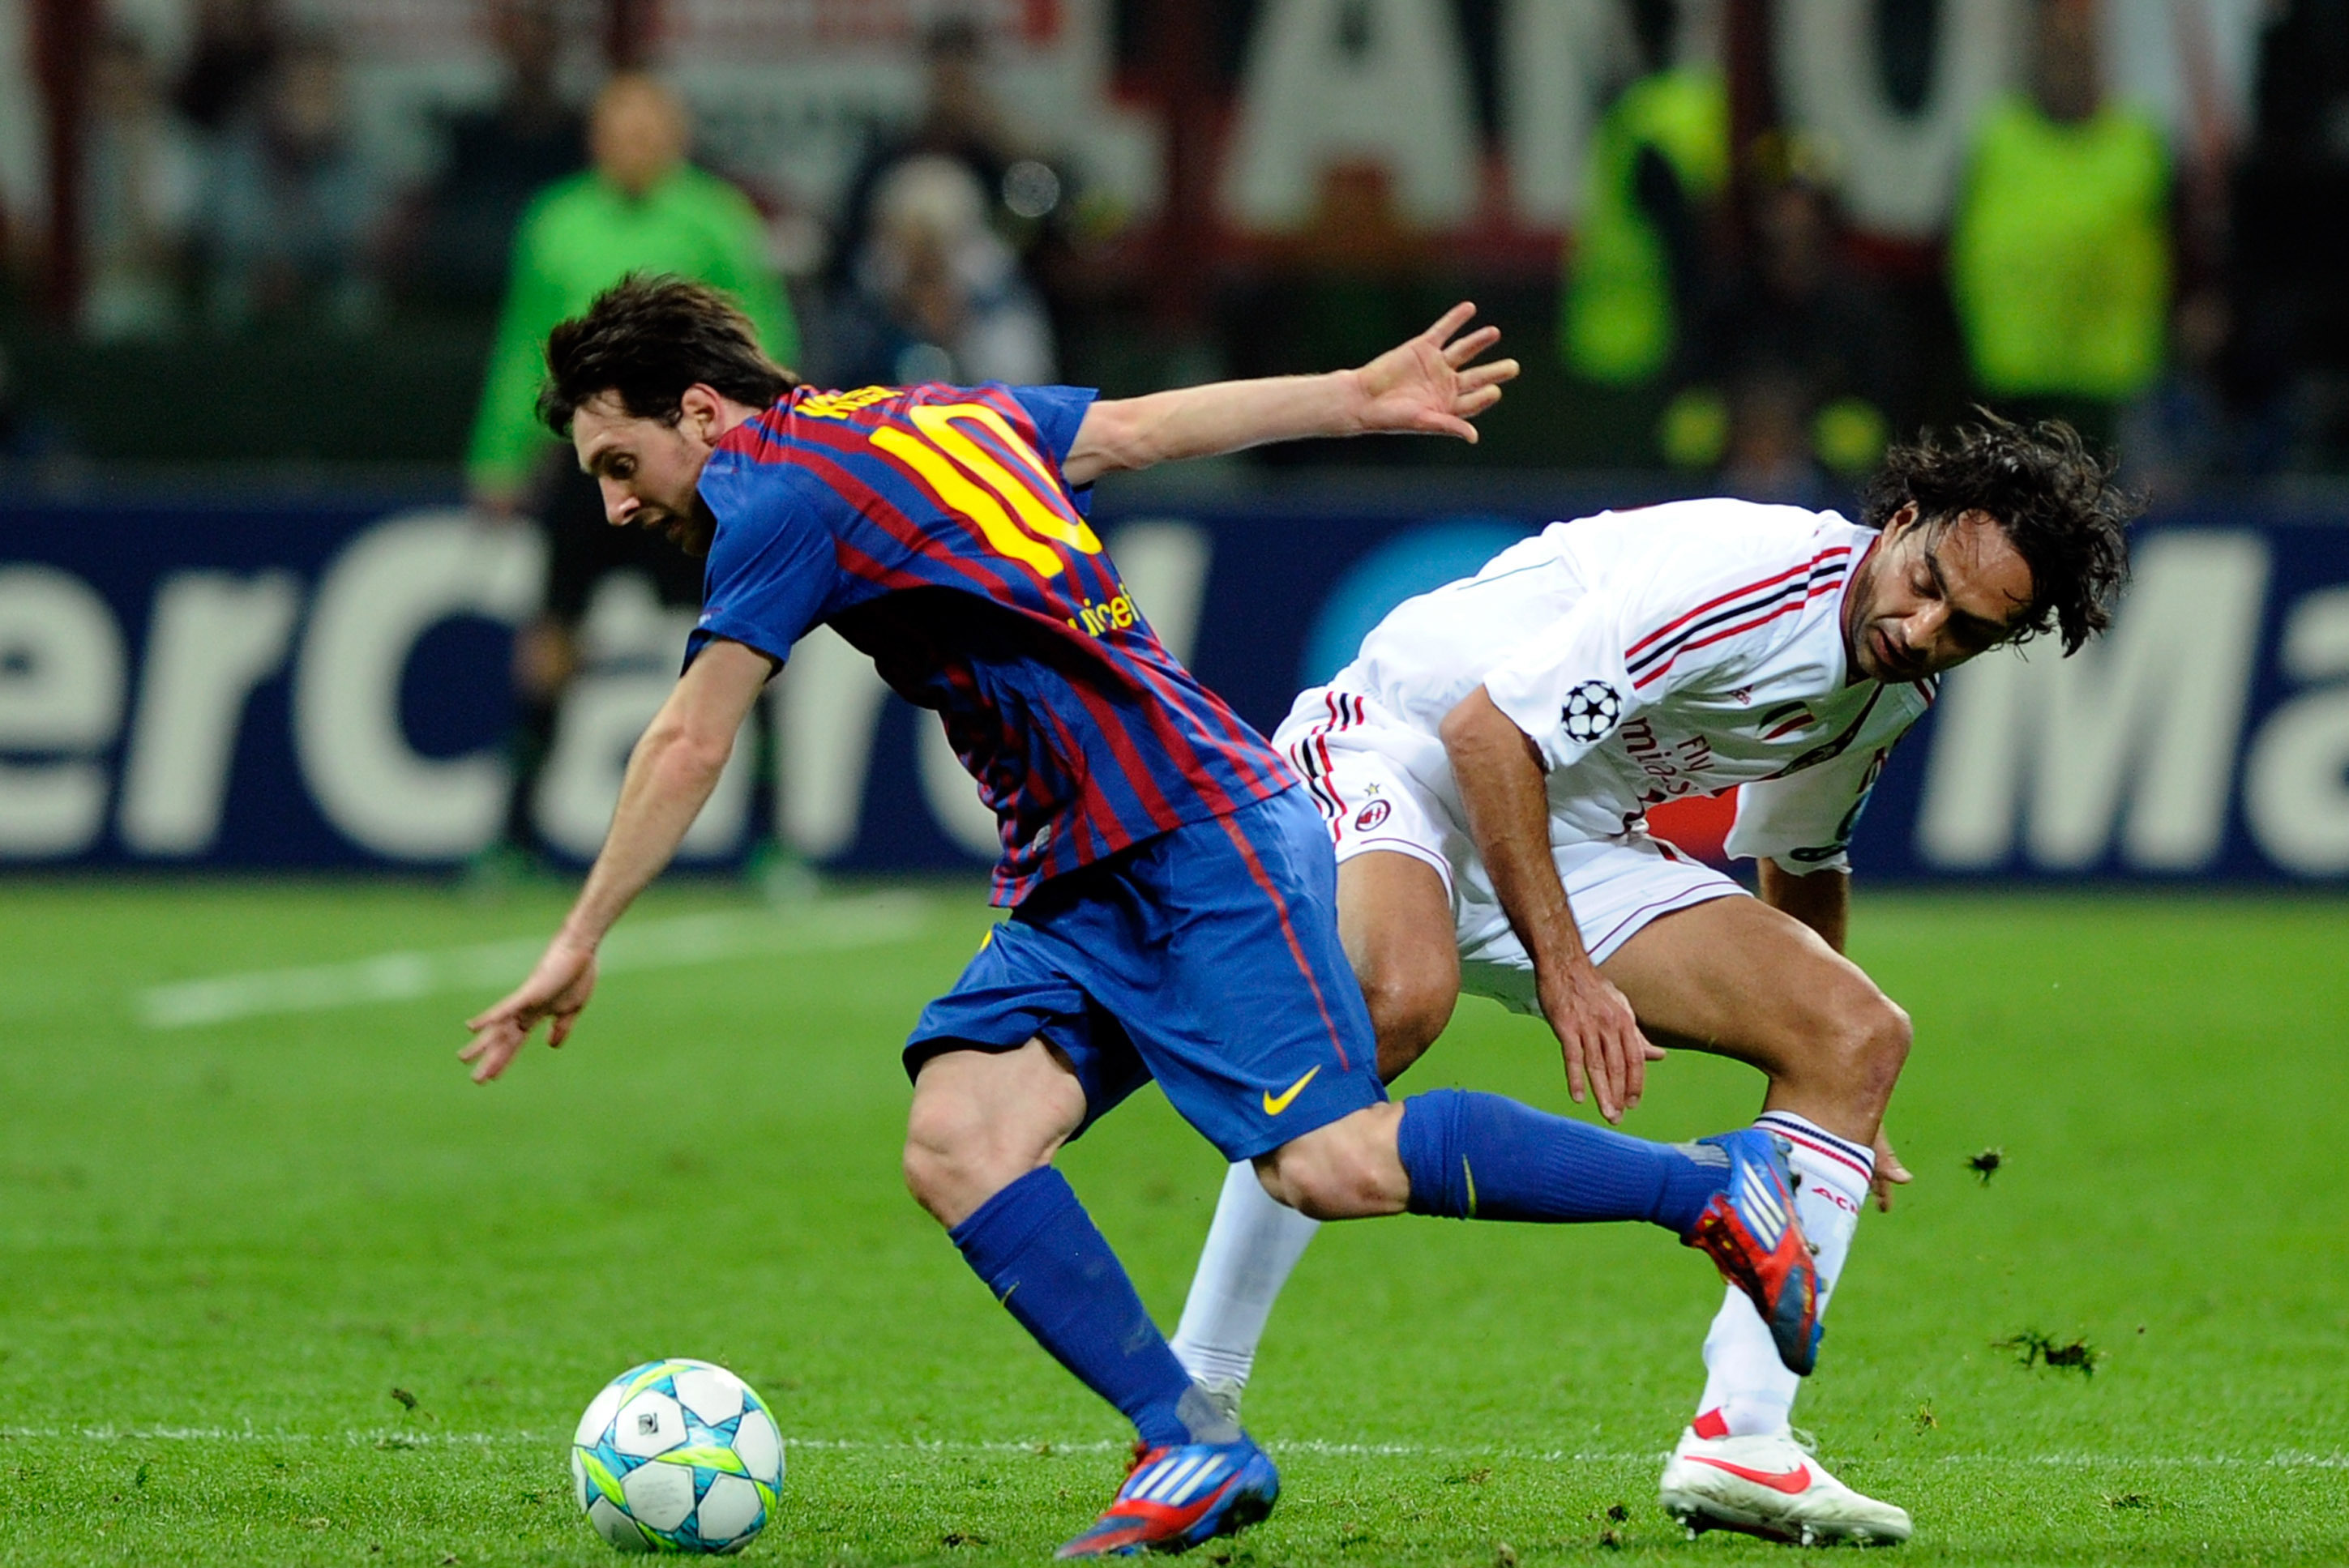 Fc Barcelona Vs Ac Milan Will Barca Survive The Next Champions League Match Bleacher Report Latest News Videos And Highlights